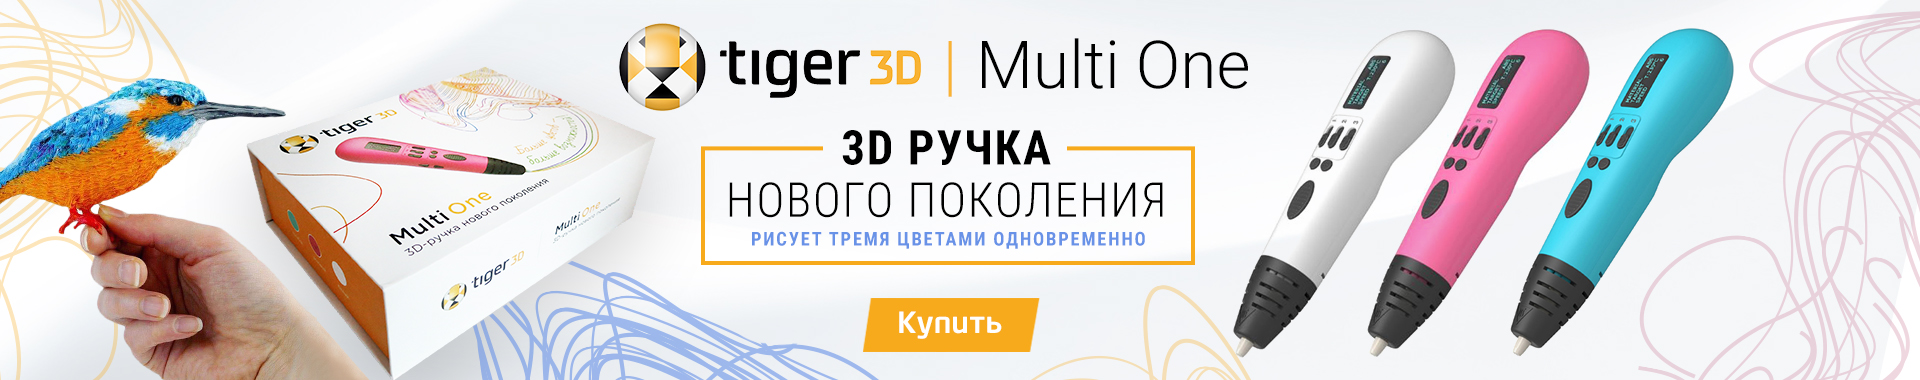 3D ручка Tiger 3D Multi One